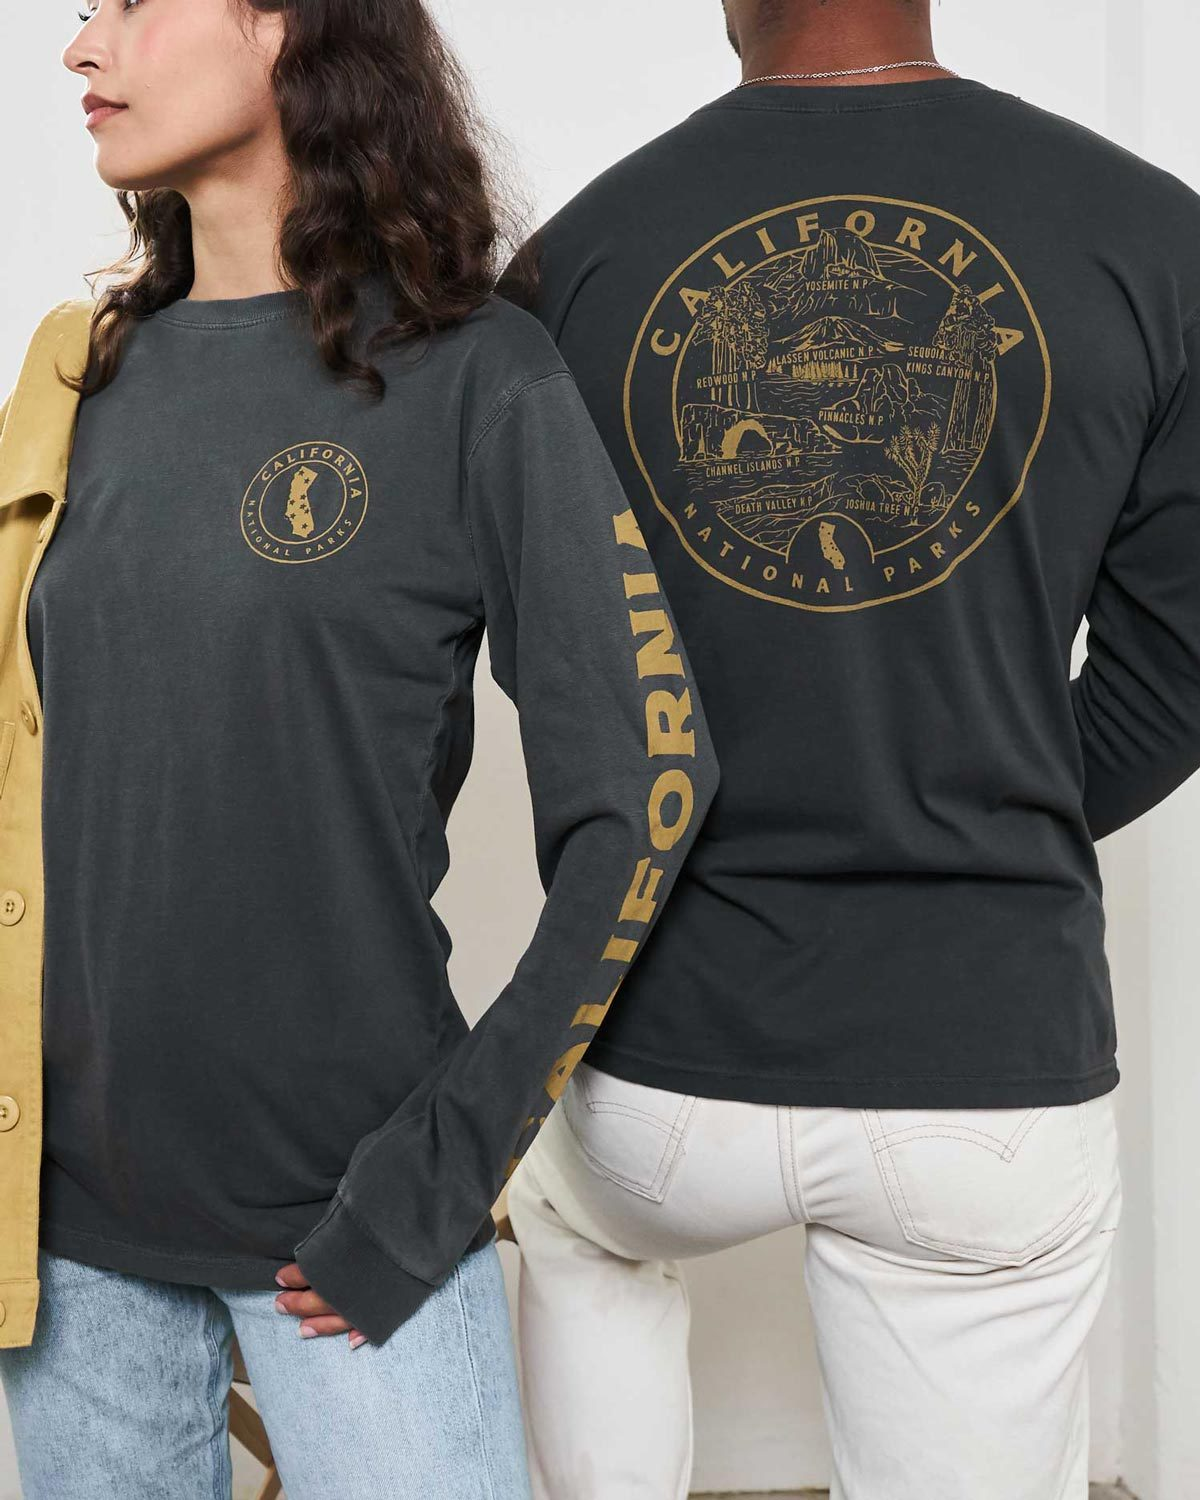 California All Parks Roundup Long Sleeve Tee